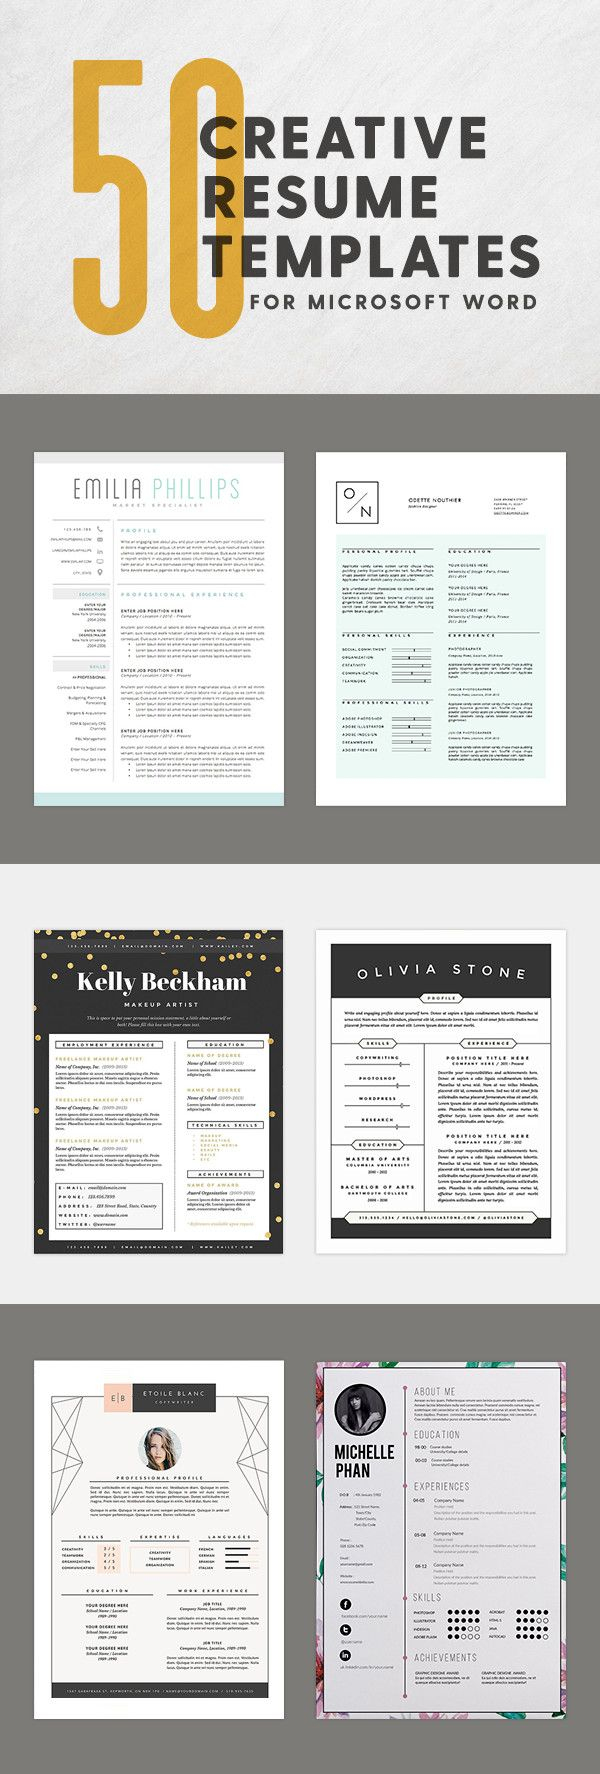 50 Creative Resume Templates You Wonu0027t Believe Are Microsoft Word  Unique Resume Templates